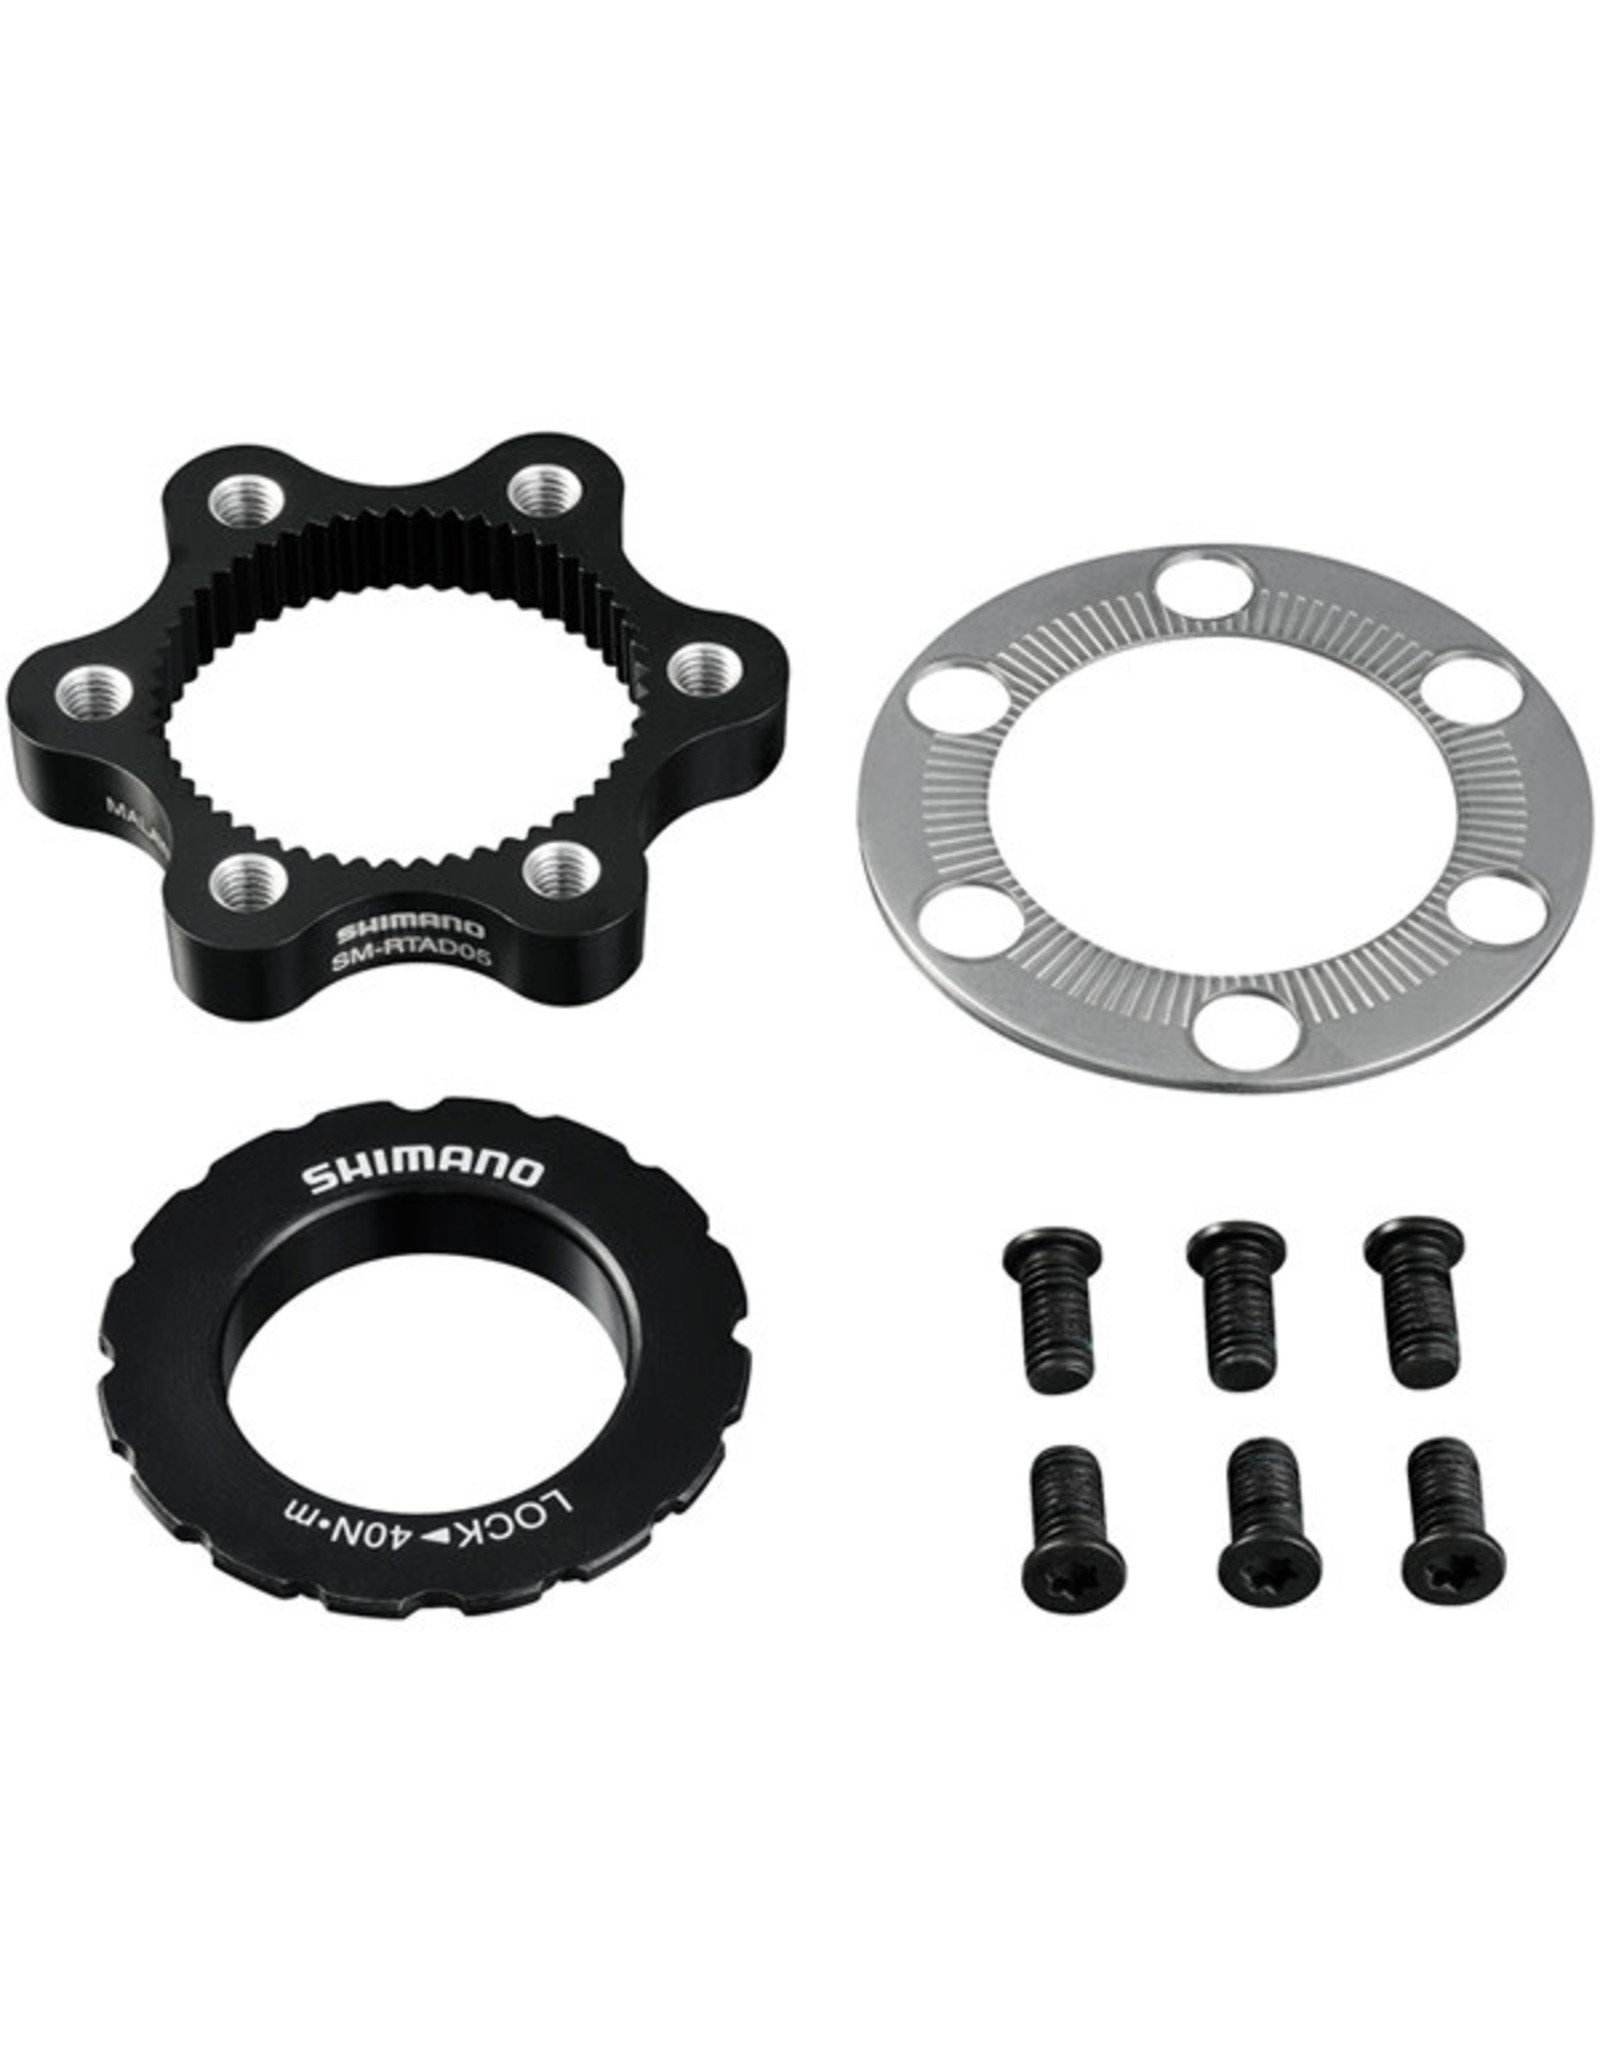 Shimano Spares SM-RTAD05 6-bolt rotor to Centre-Lock hub disc adapter